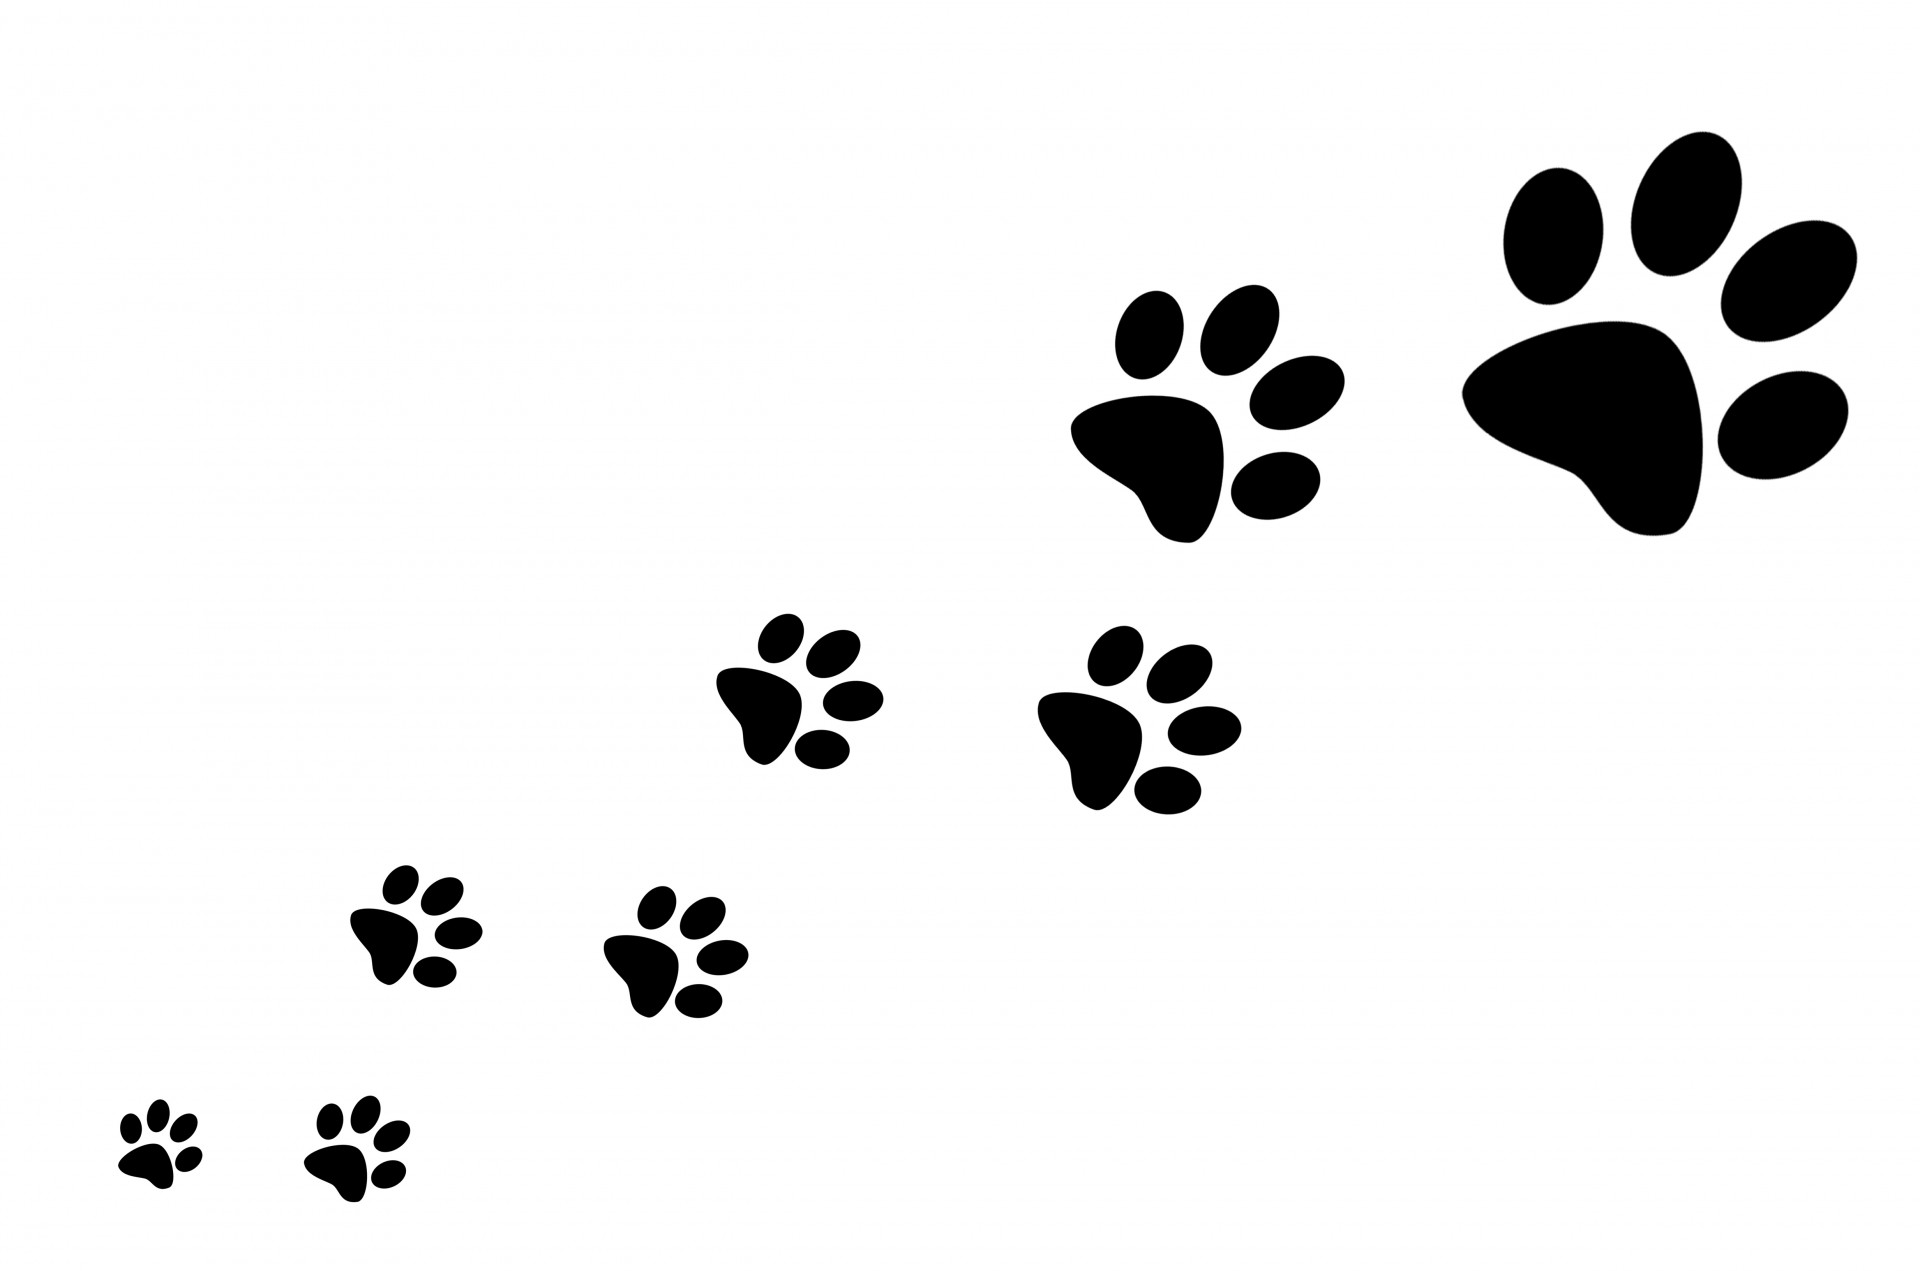 dog print clipart free download best dog print clipart on